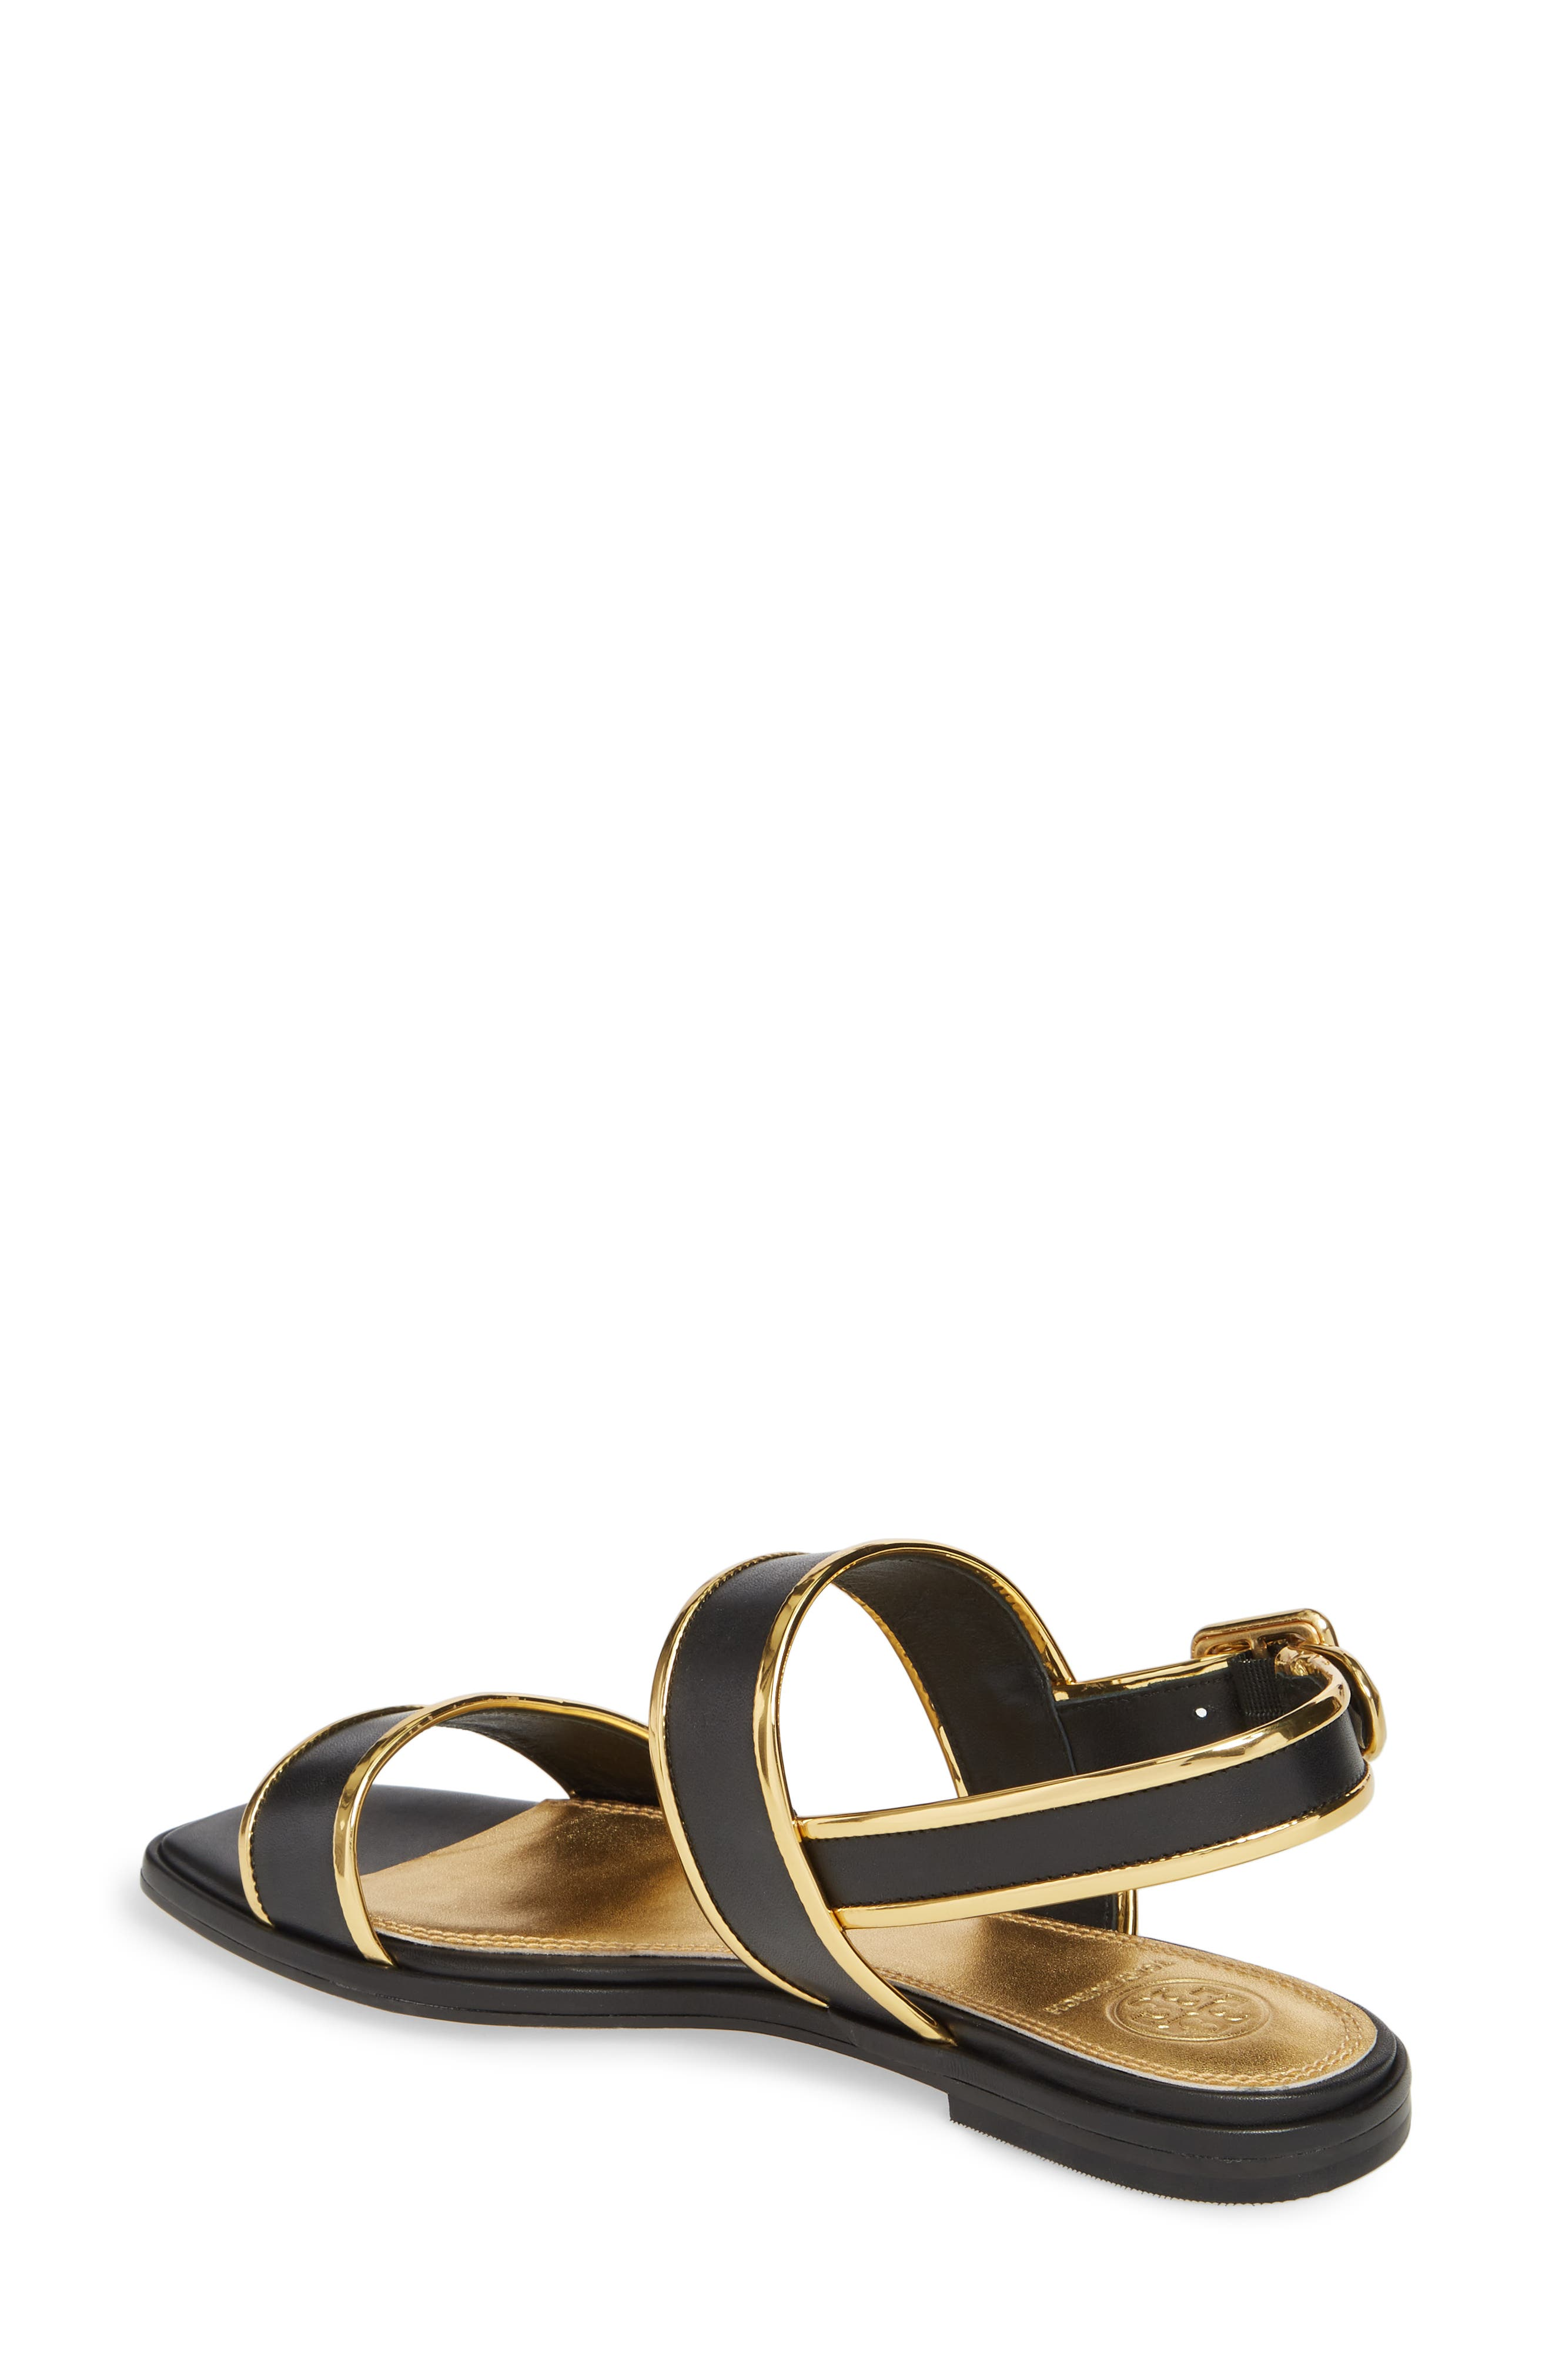 Delaney Double Strap Sandal,                             Alternate thumbnail 7, color,